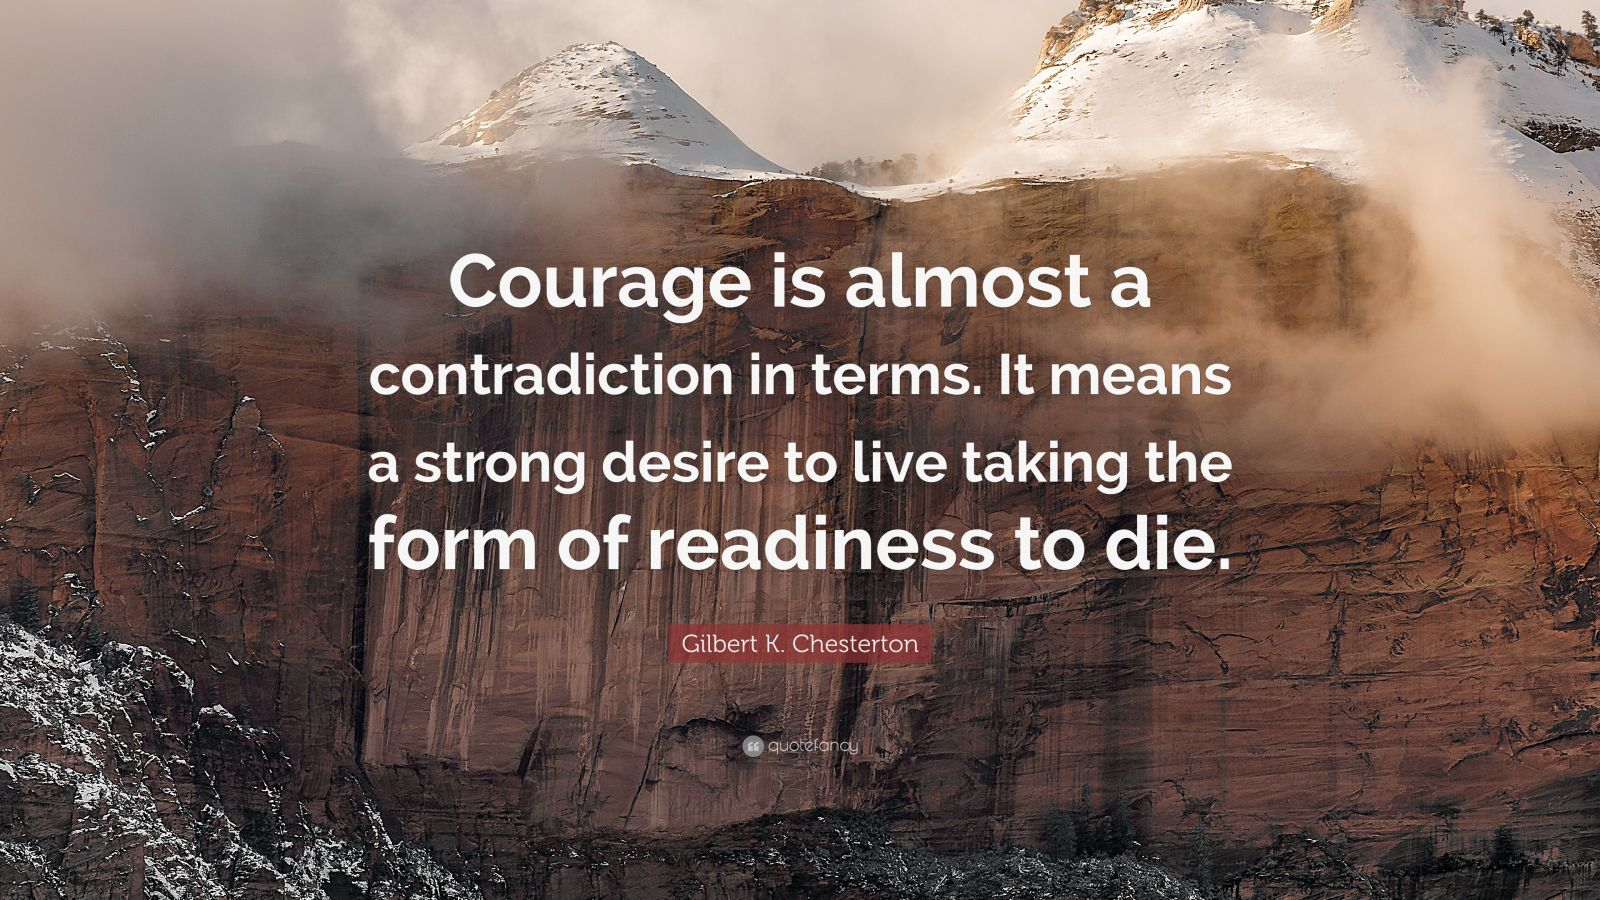 """Gilbert K. Chesterton Quote: """"Courage is almost a contradiction in terms. It means a strong desire to live taking the form of readiness to die."""""""